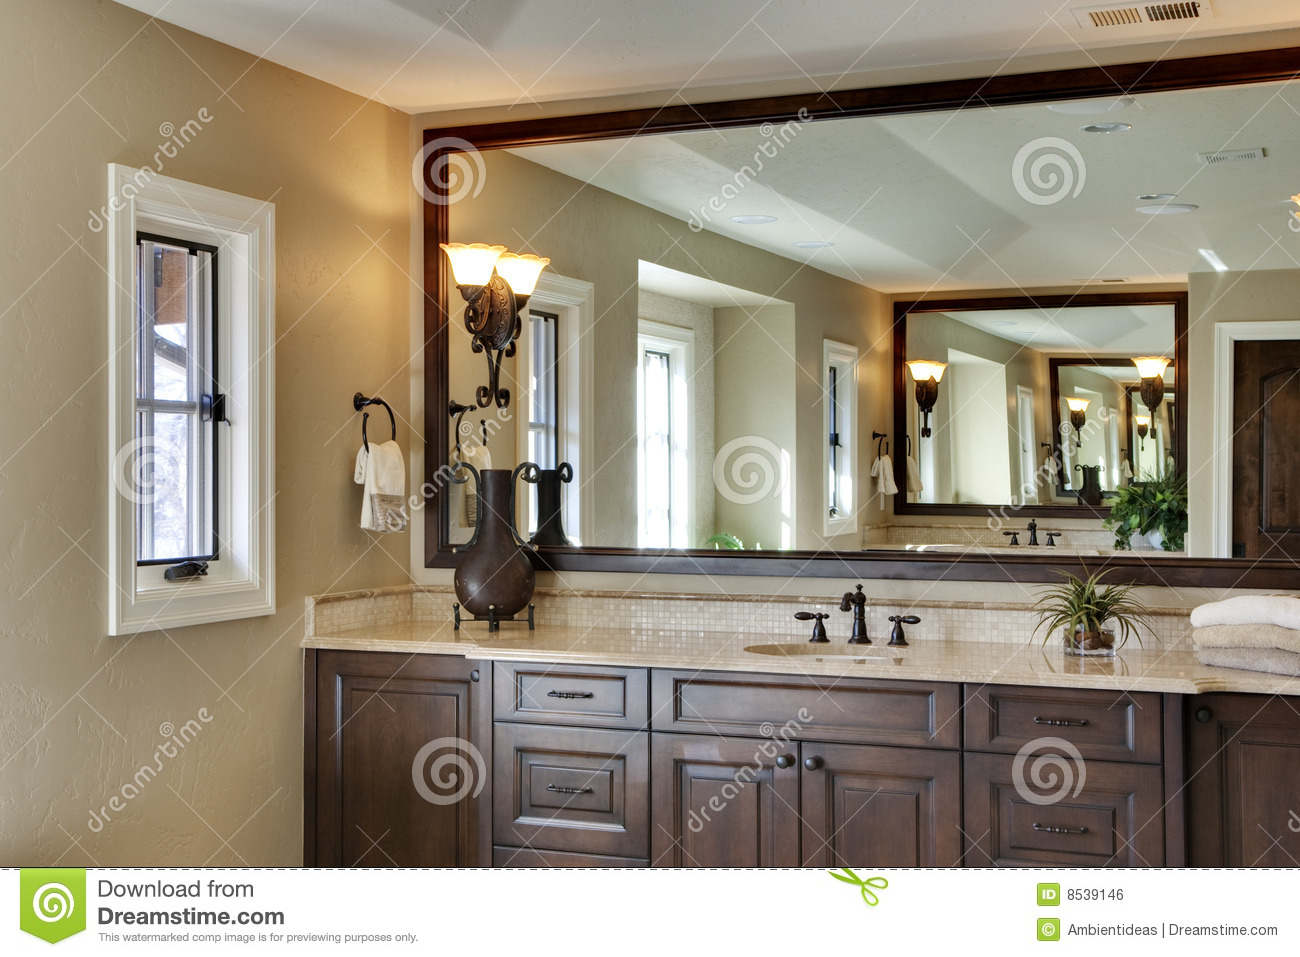 huge bathroom mirror big bathroom mirrors 12 architecture enhancedhomes org 13187